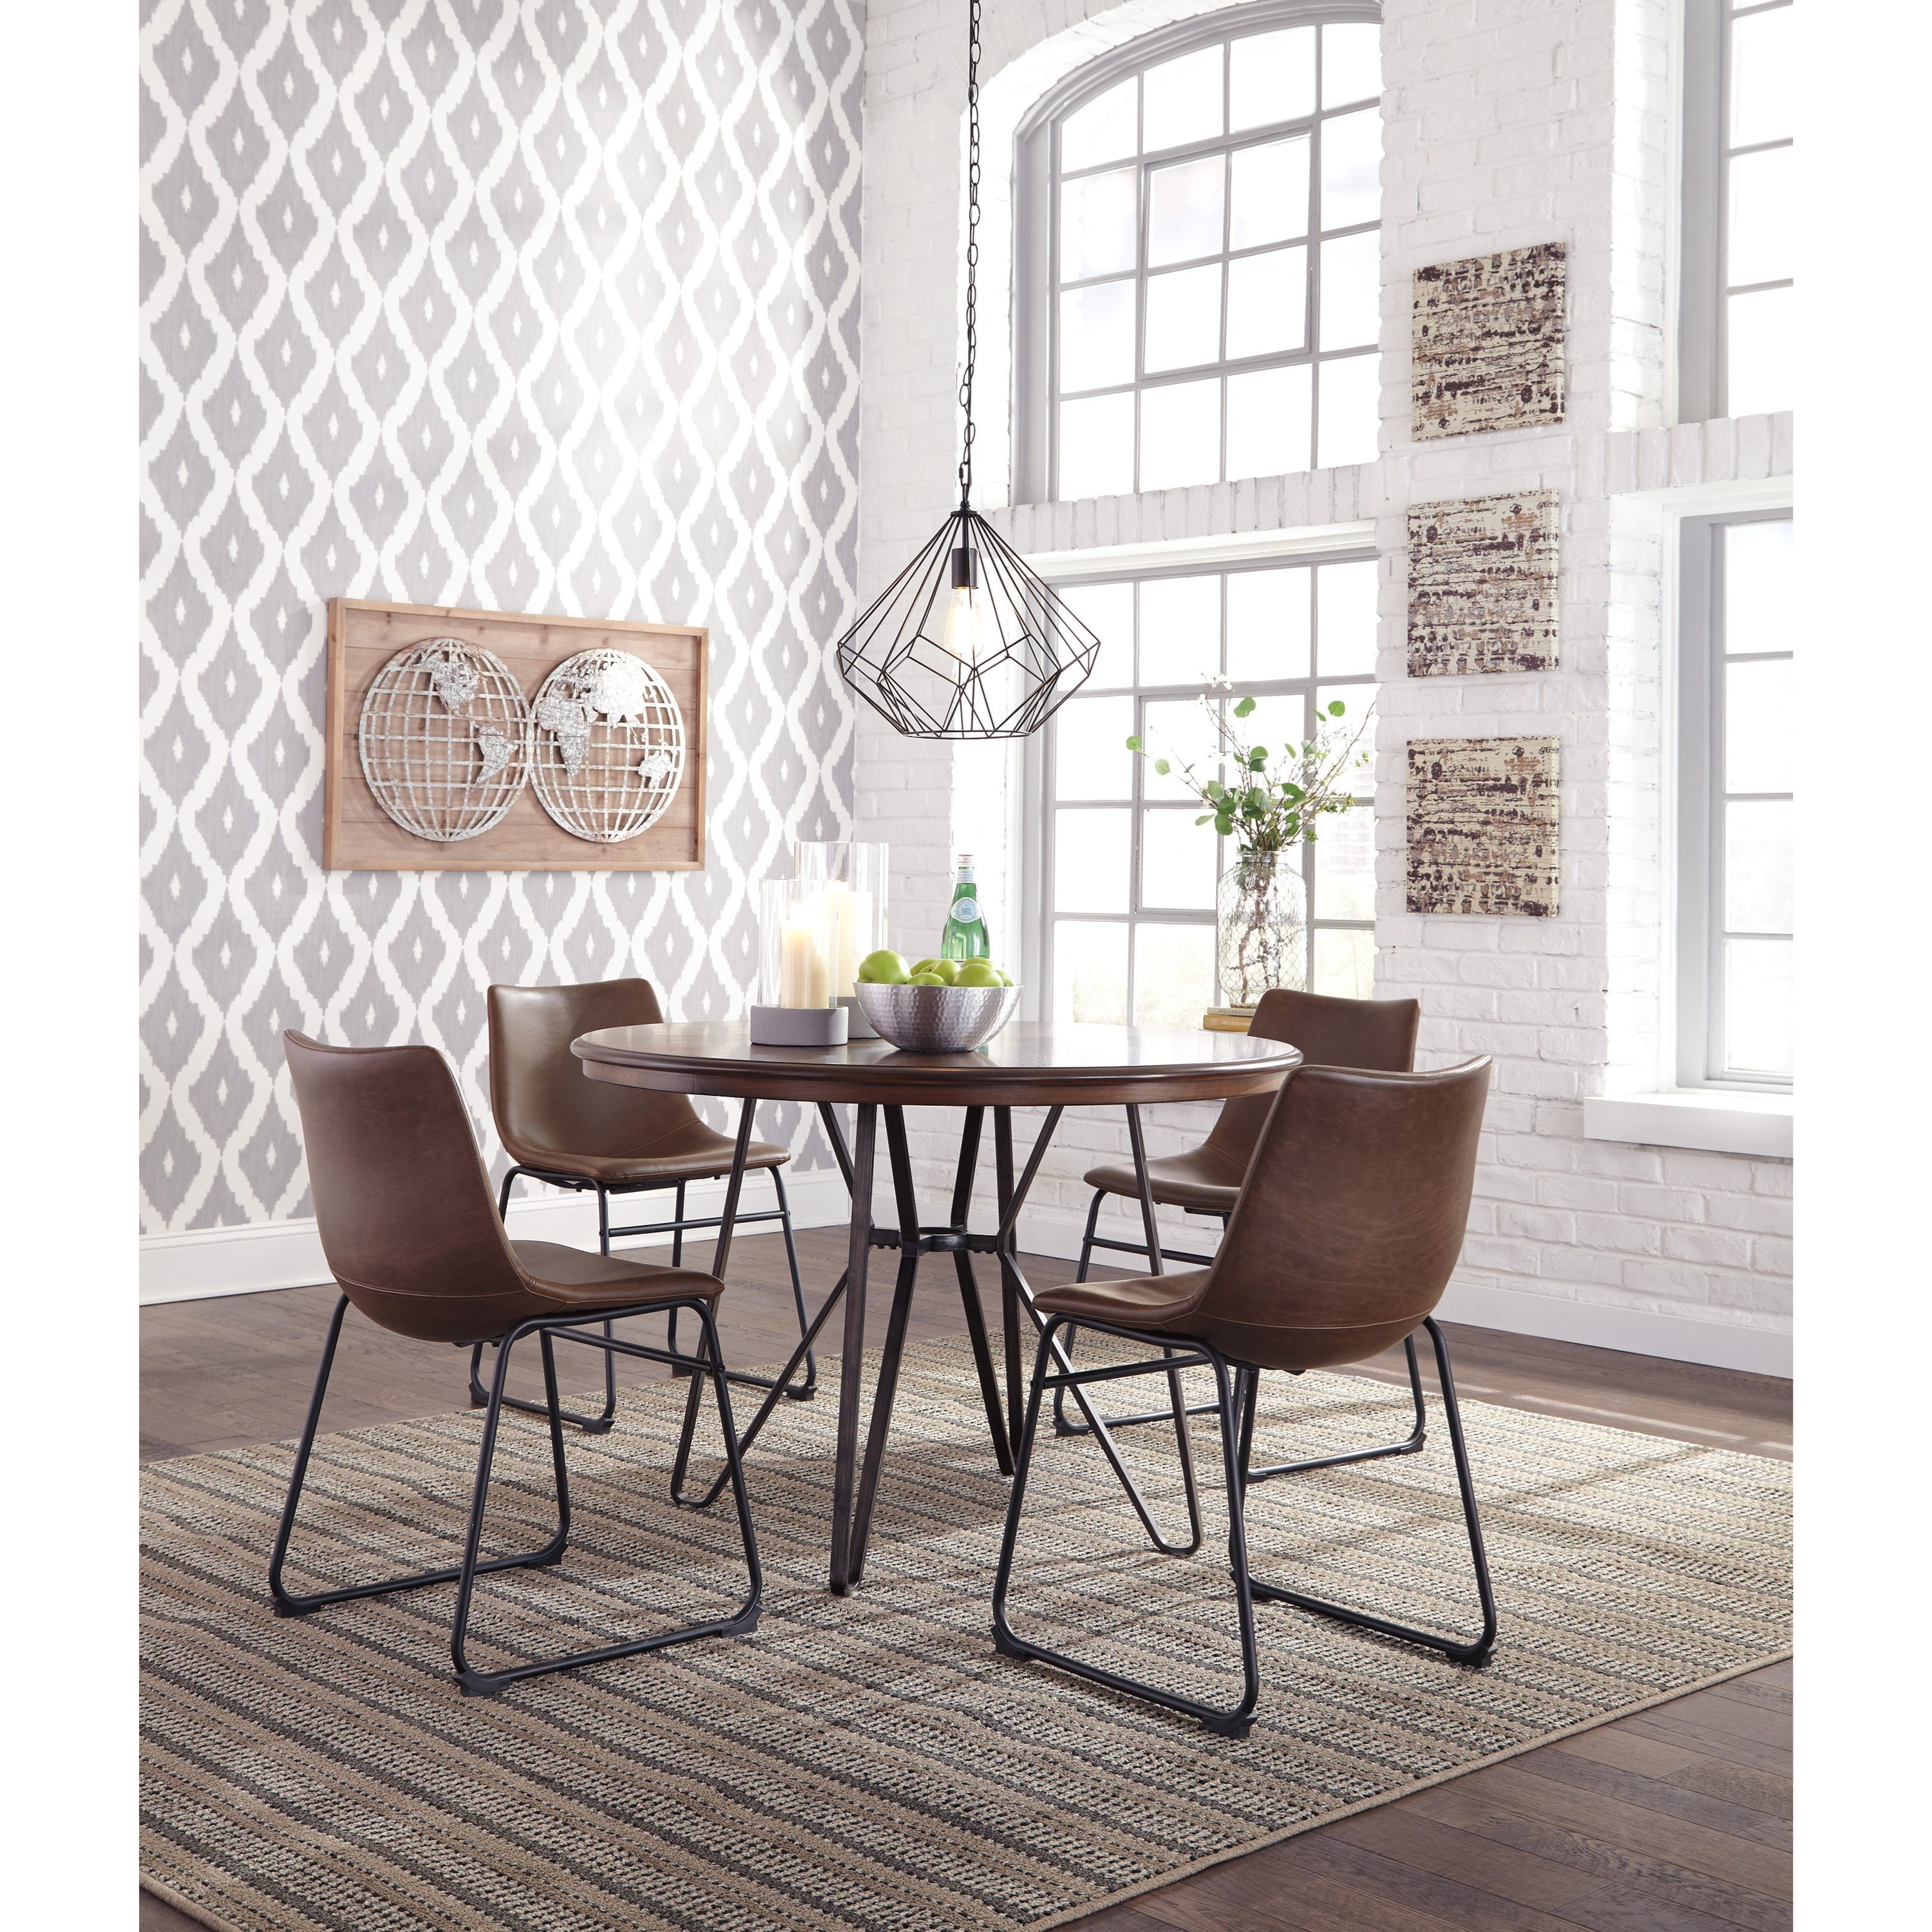 Dining Room Sets Round: Signature Design By Ashley Centiar 5-Piece Round Dining